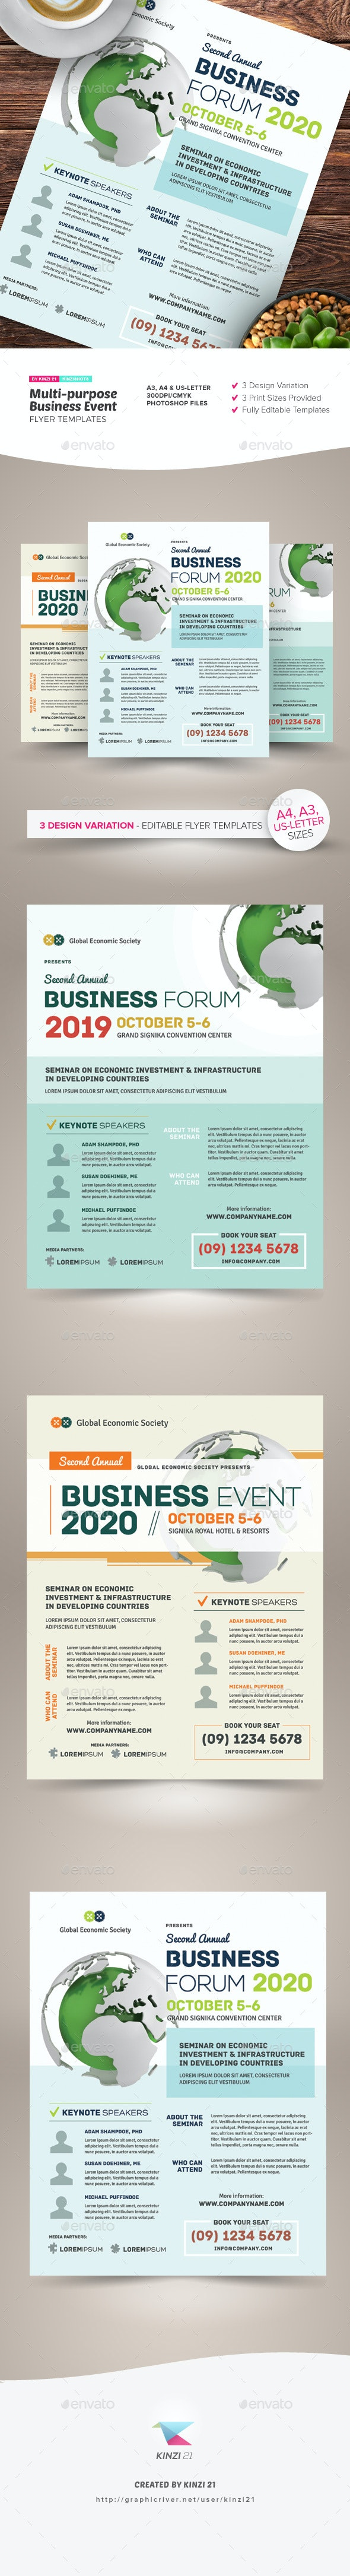 Multi-purpose Business Event Flyer & Poster Templates - Corporate Flyers